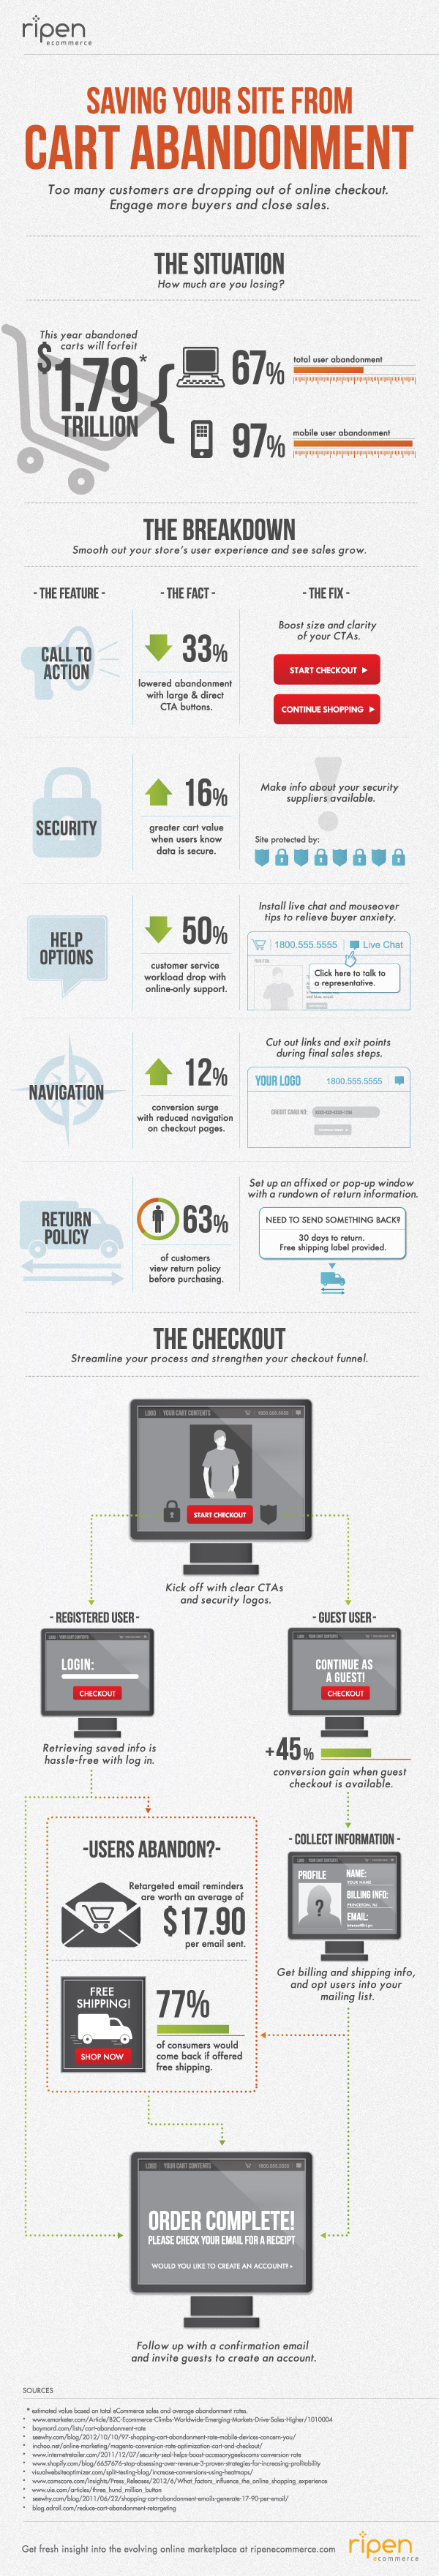 Shopping-Cart-Abandonment-Infographic